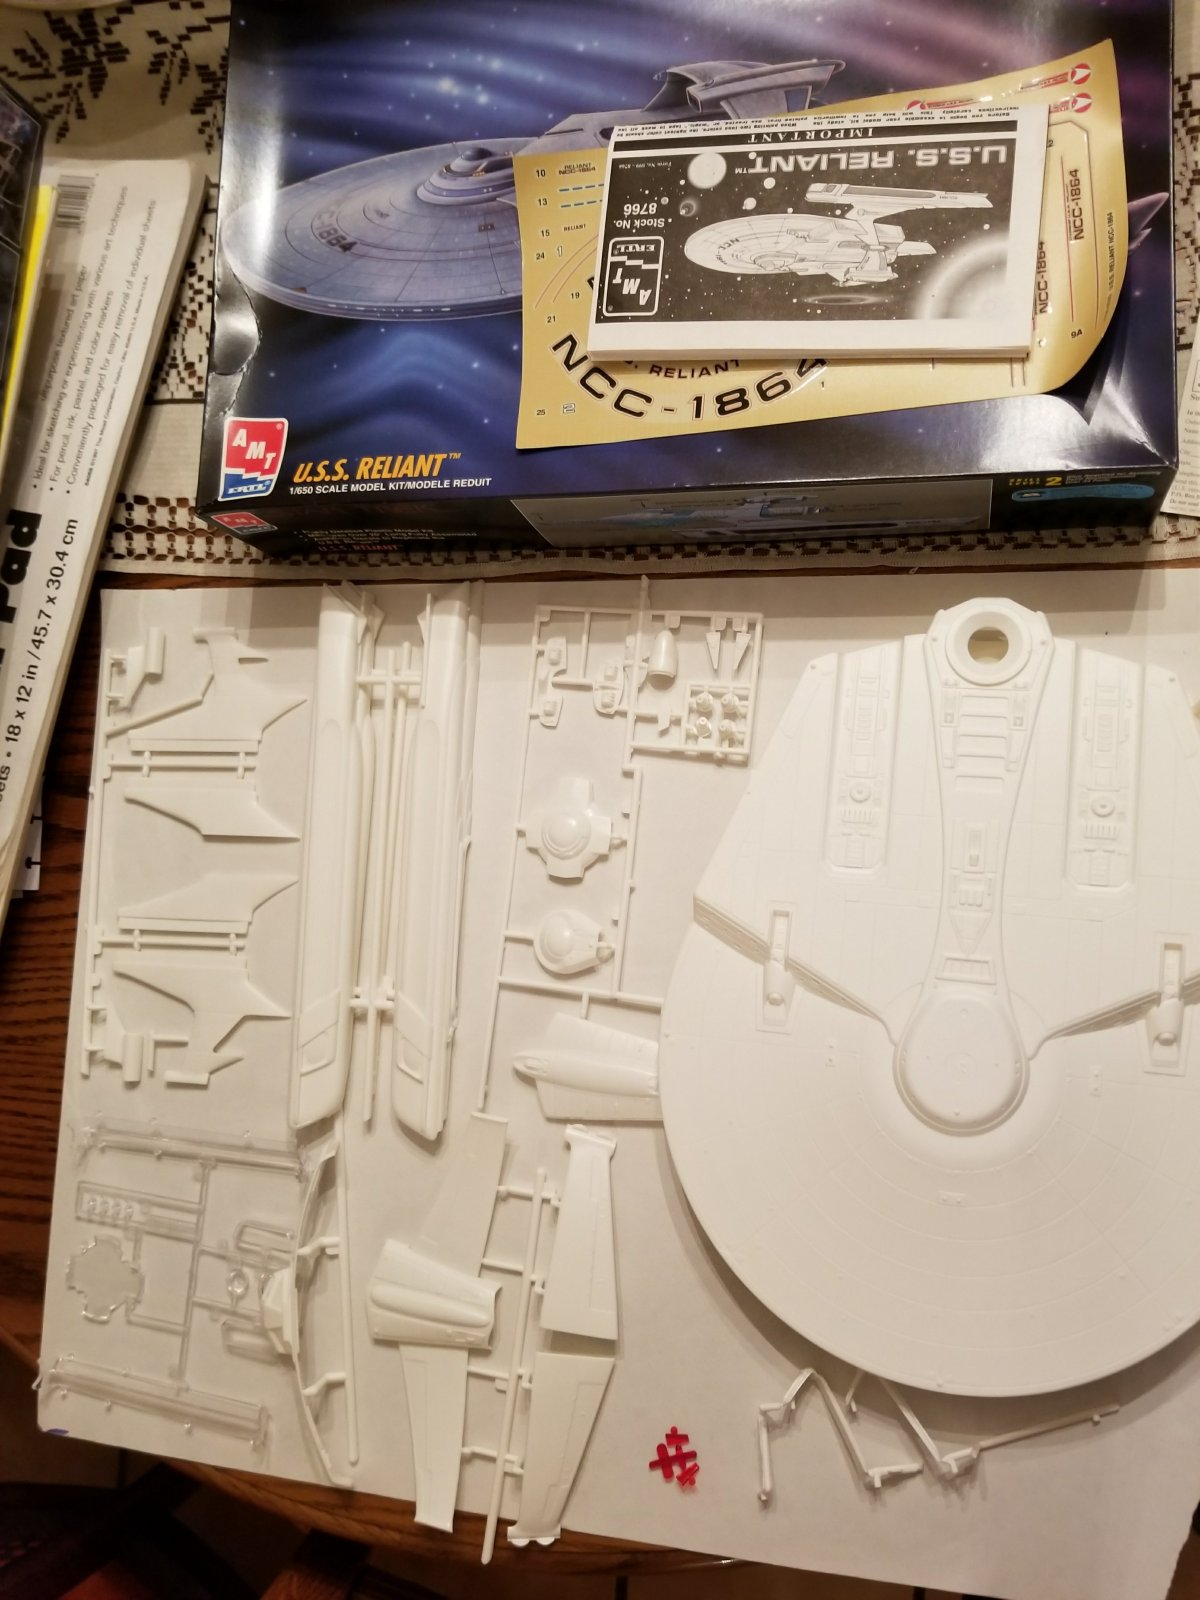 Dispatches from the World of ADHD: Model Building, The Chubby Kid, and the U.S.S.Reliant.